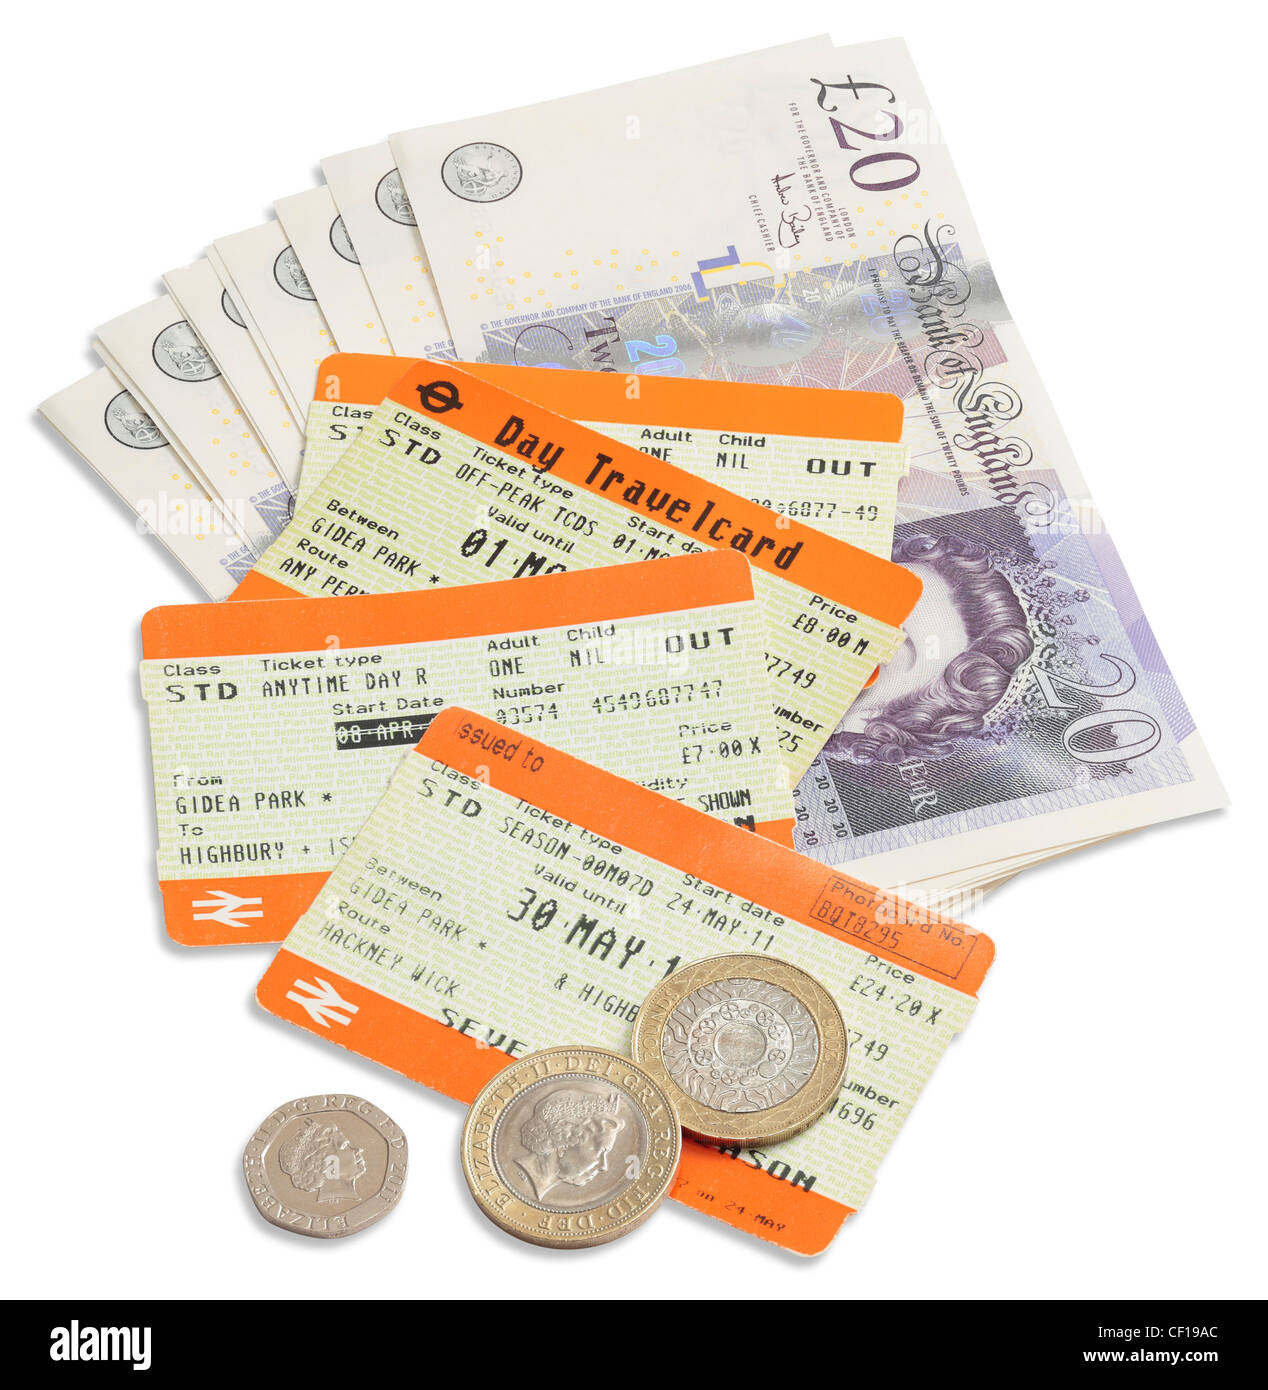 Train tickets - spiralling cost of rail fares. Stock Photo